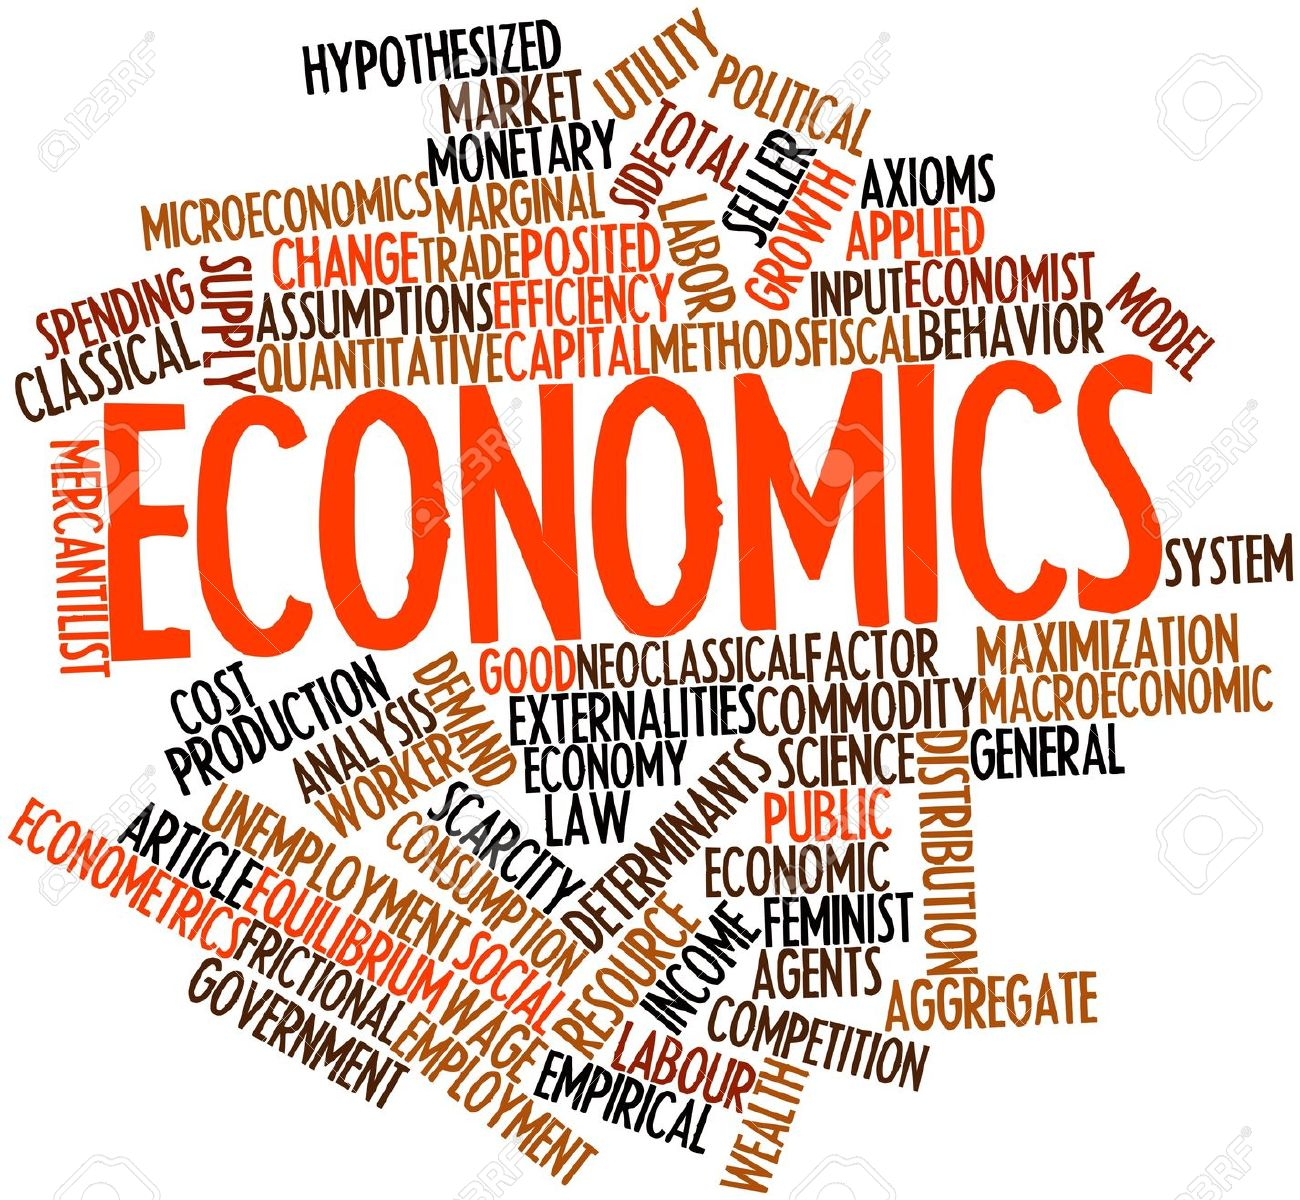 relationship between political sociology and economics